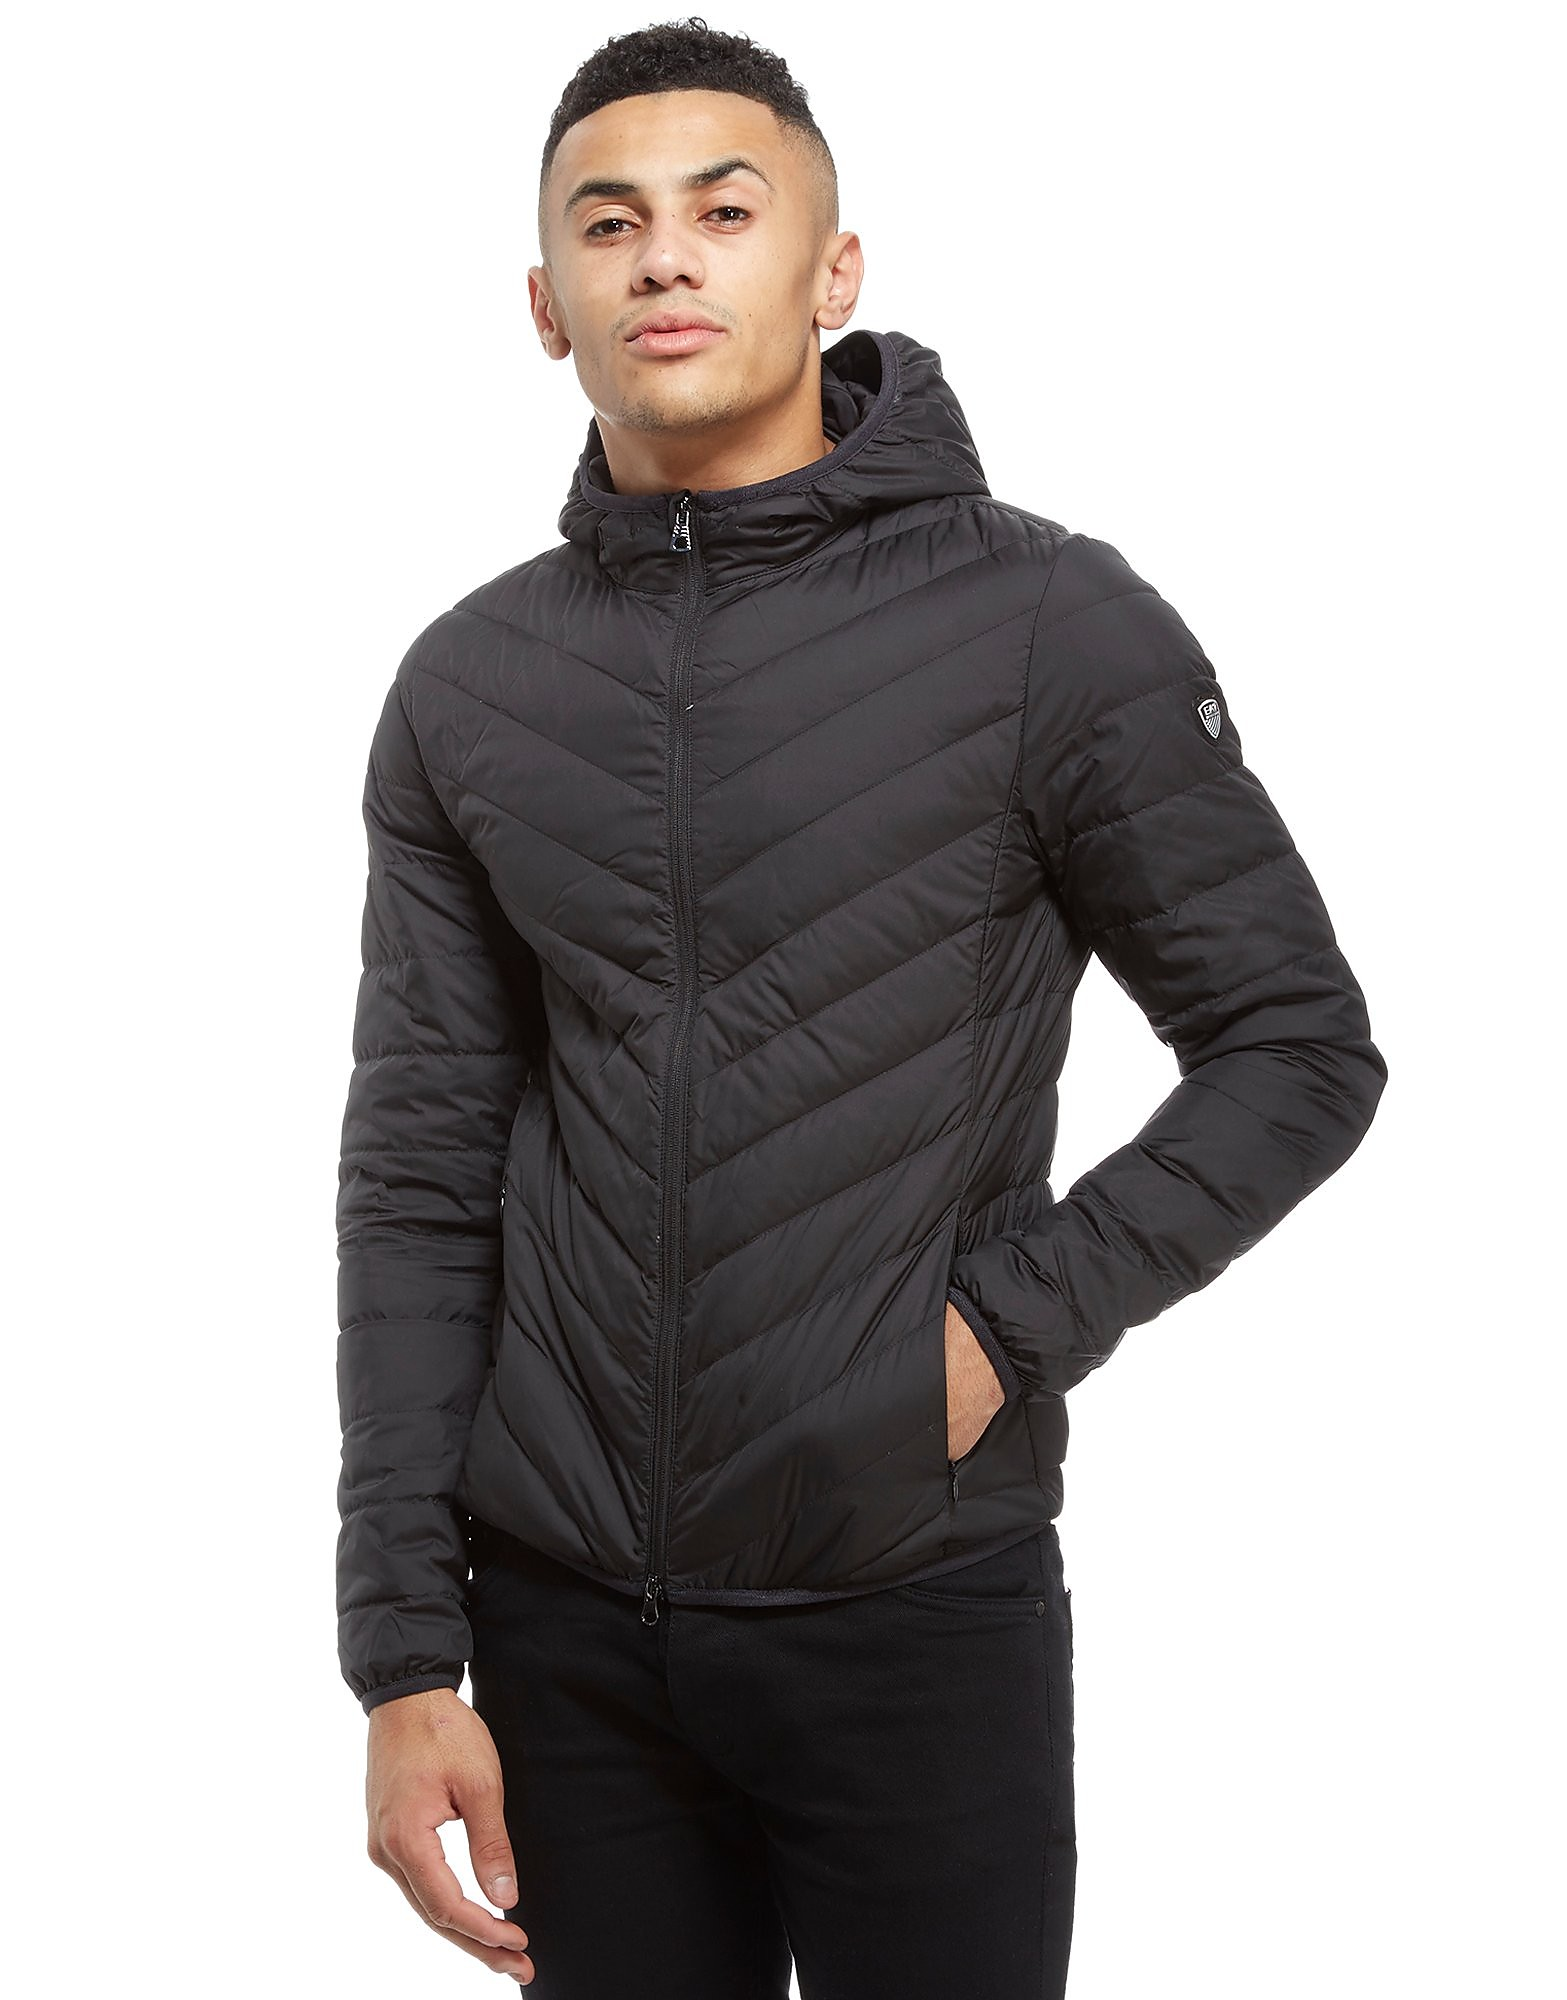 Emporio Armani EA7 New Core Bubble Jacket